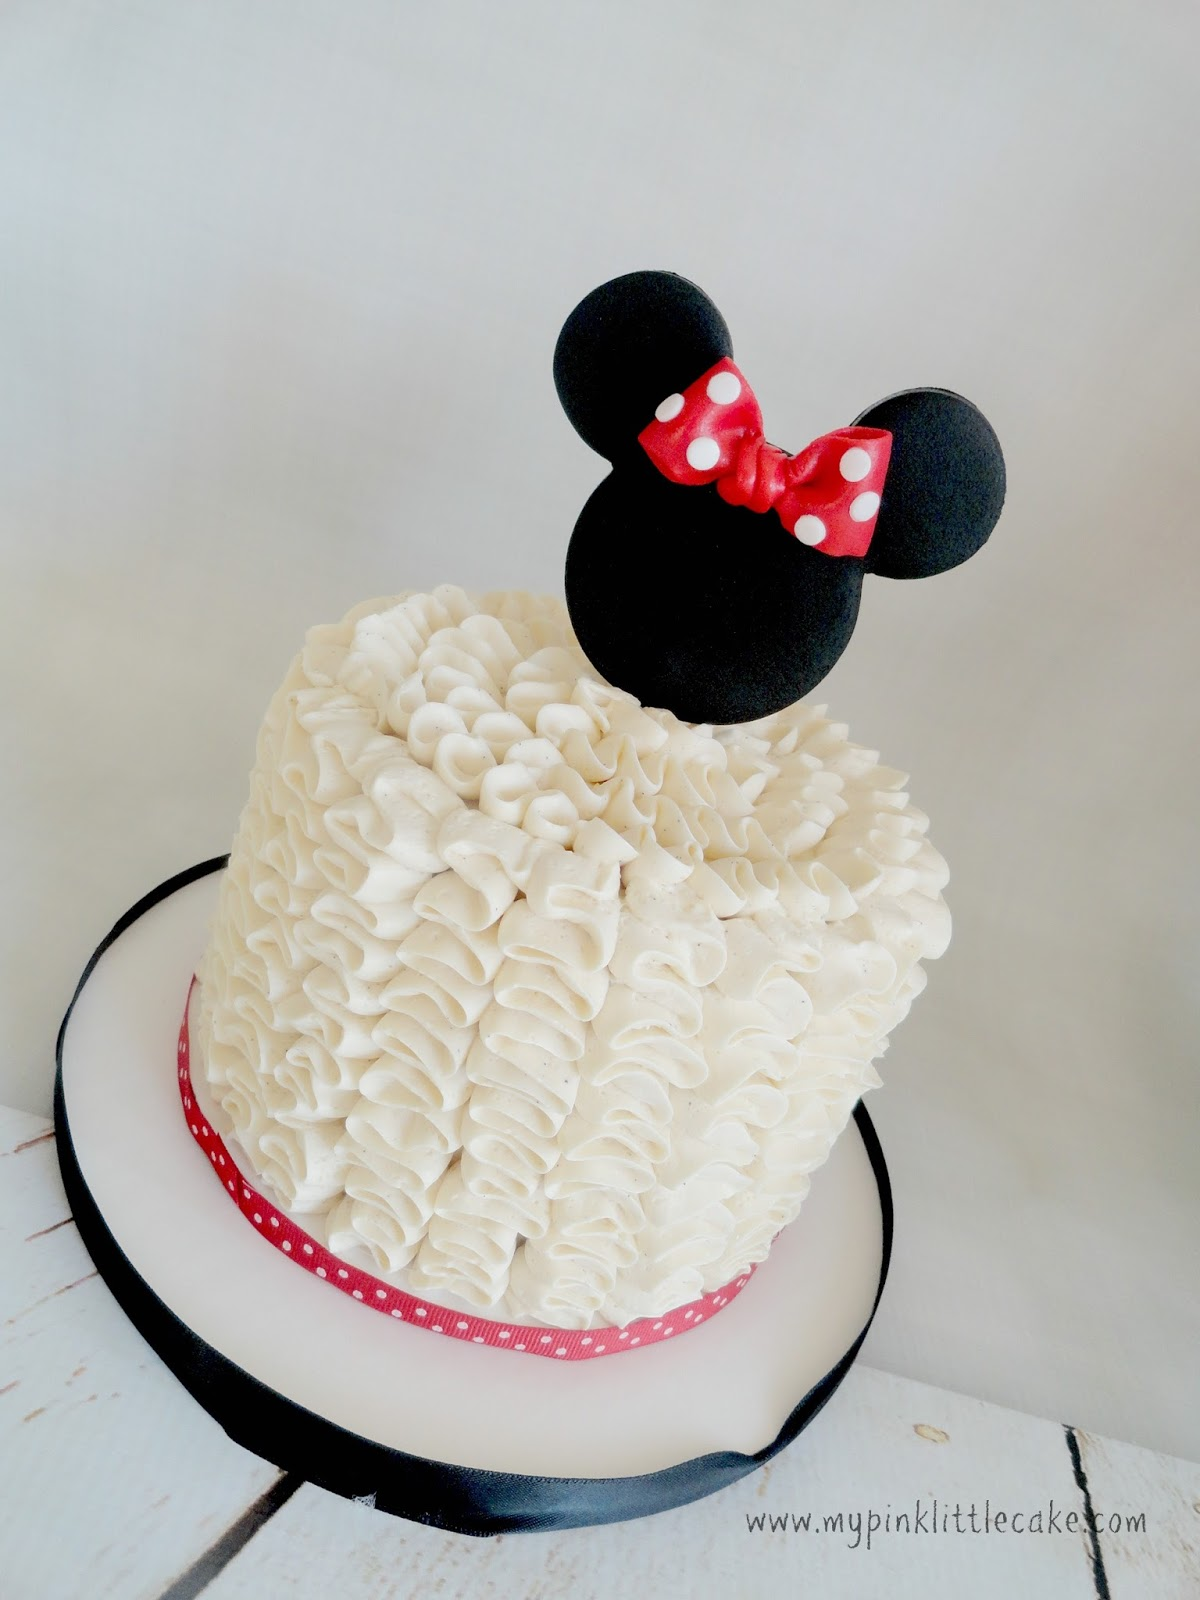 3 Tier Minnie Mouse Theme Cake To Celebrate A 1st Birthday Even The Ears Are Complement I Made Ruffle Buttercream